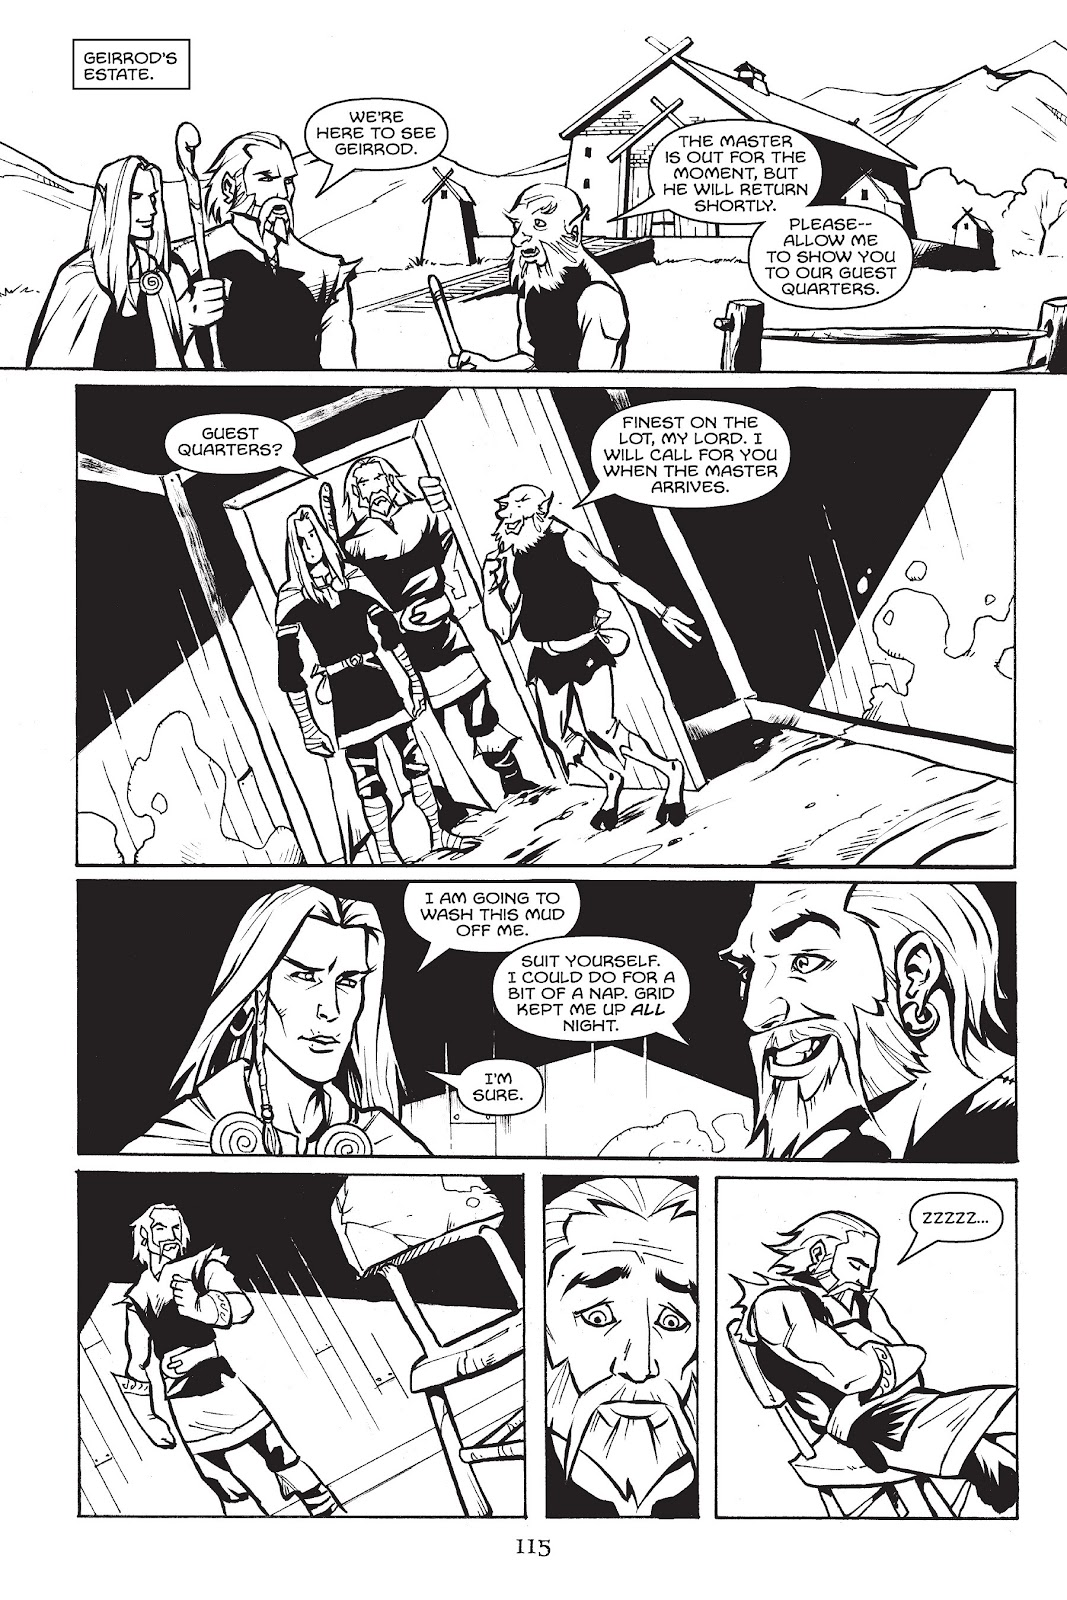 Read online Gods of Asgard comic -  Issue # TPB (Part 2) - 17